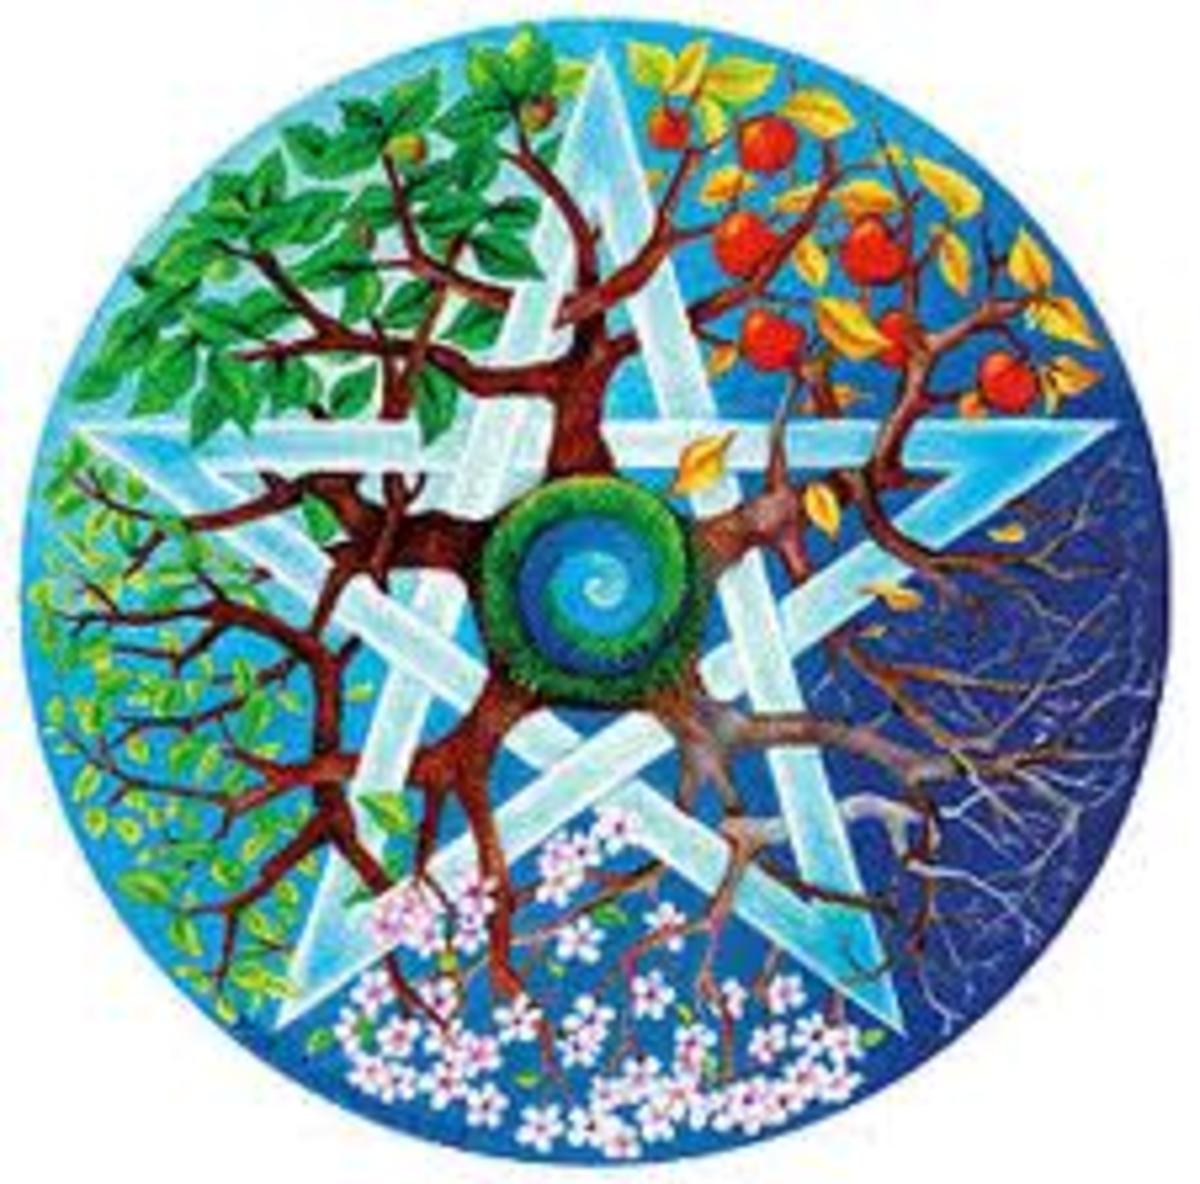 Suffer to Learn: Pagan Knowing, Learning, and Openness to Experience